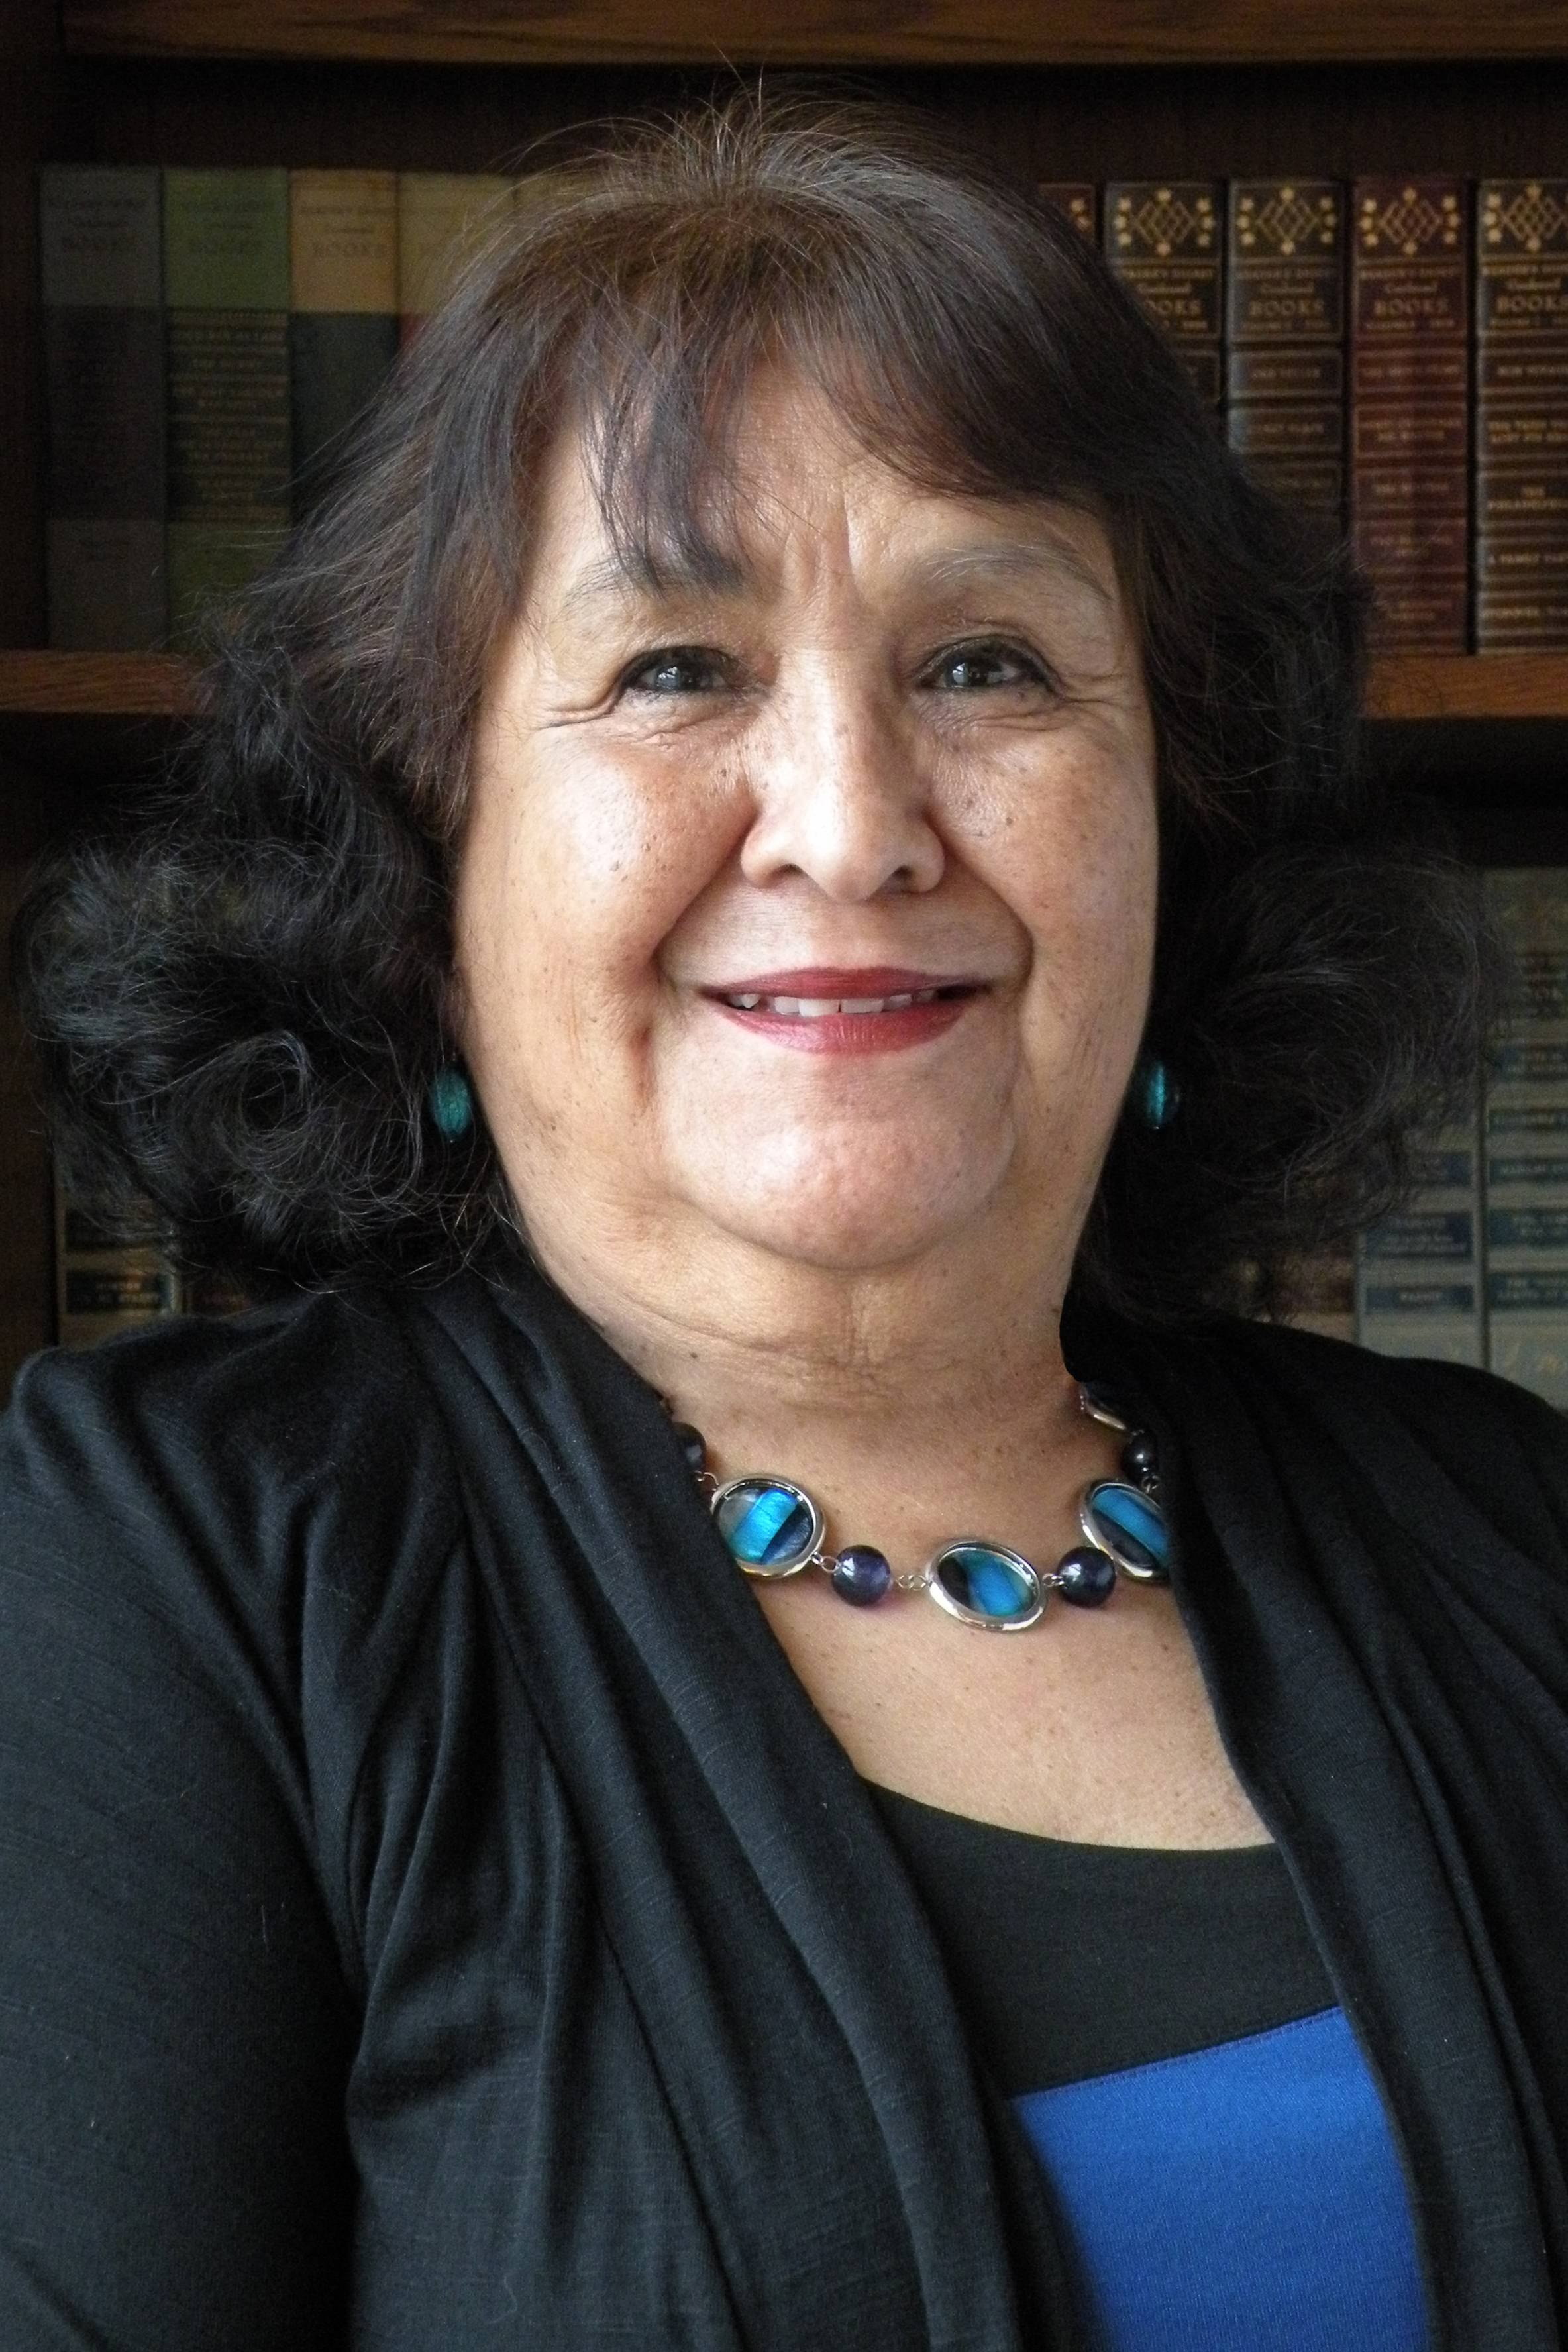 Elvira Ramirez, running for Elgin Township Board (4-year Terms)